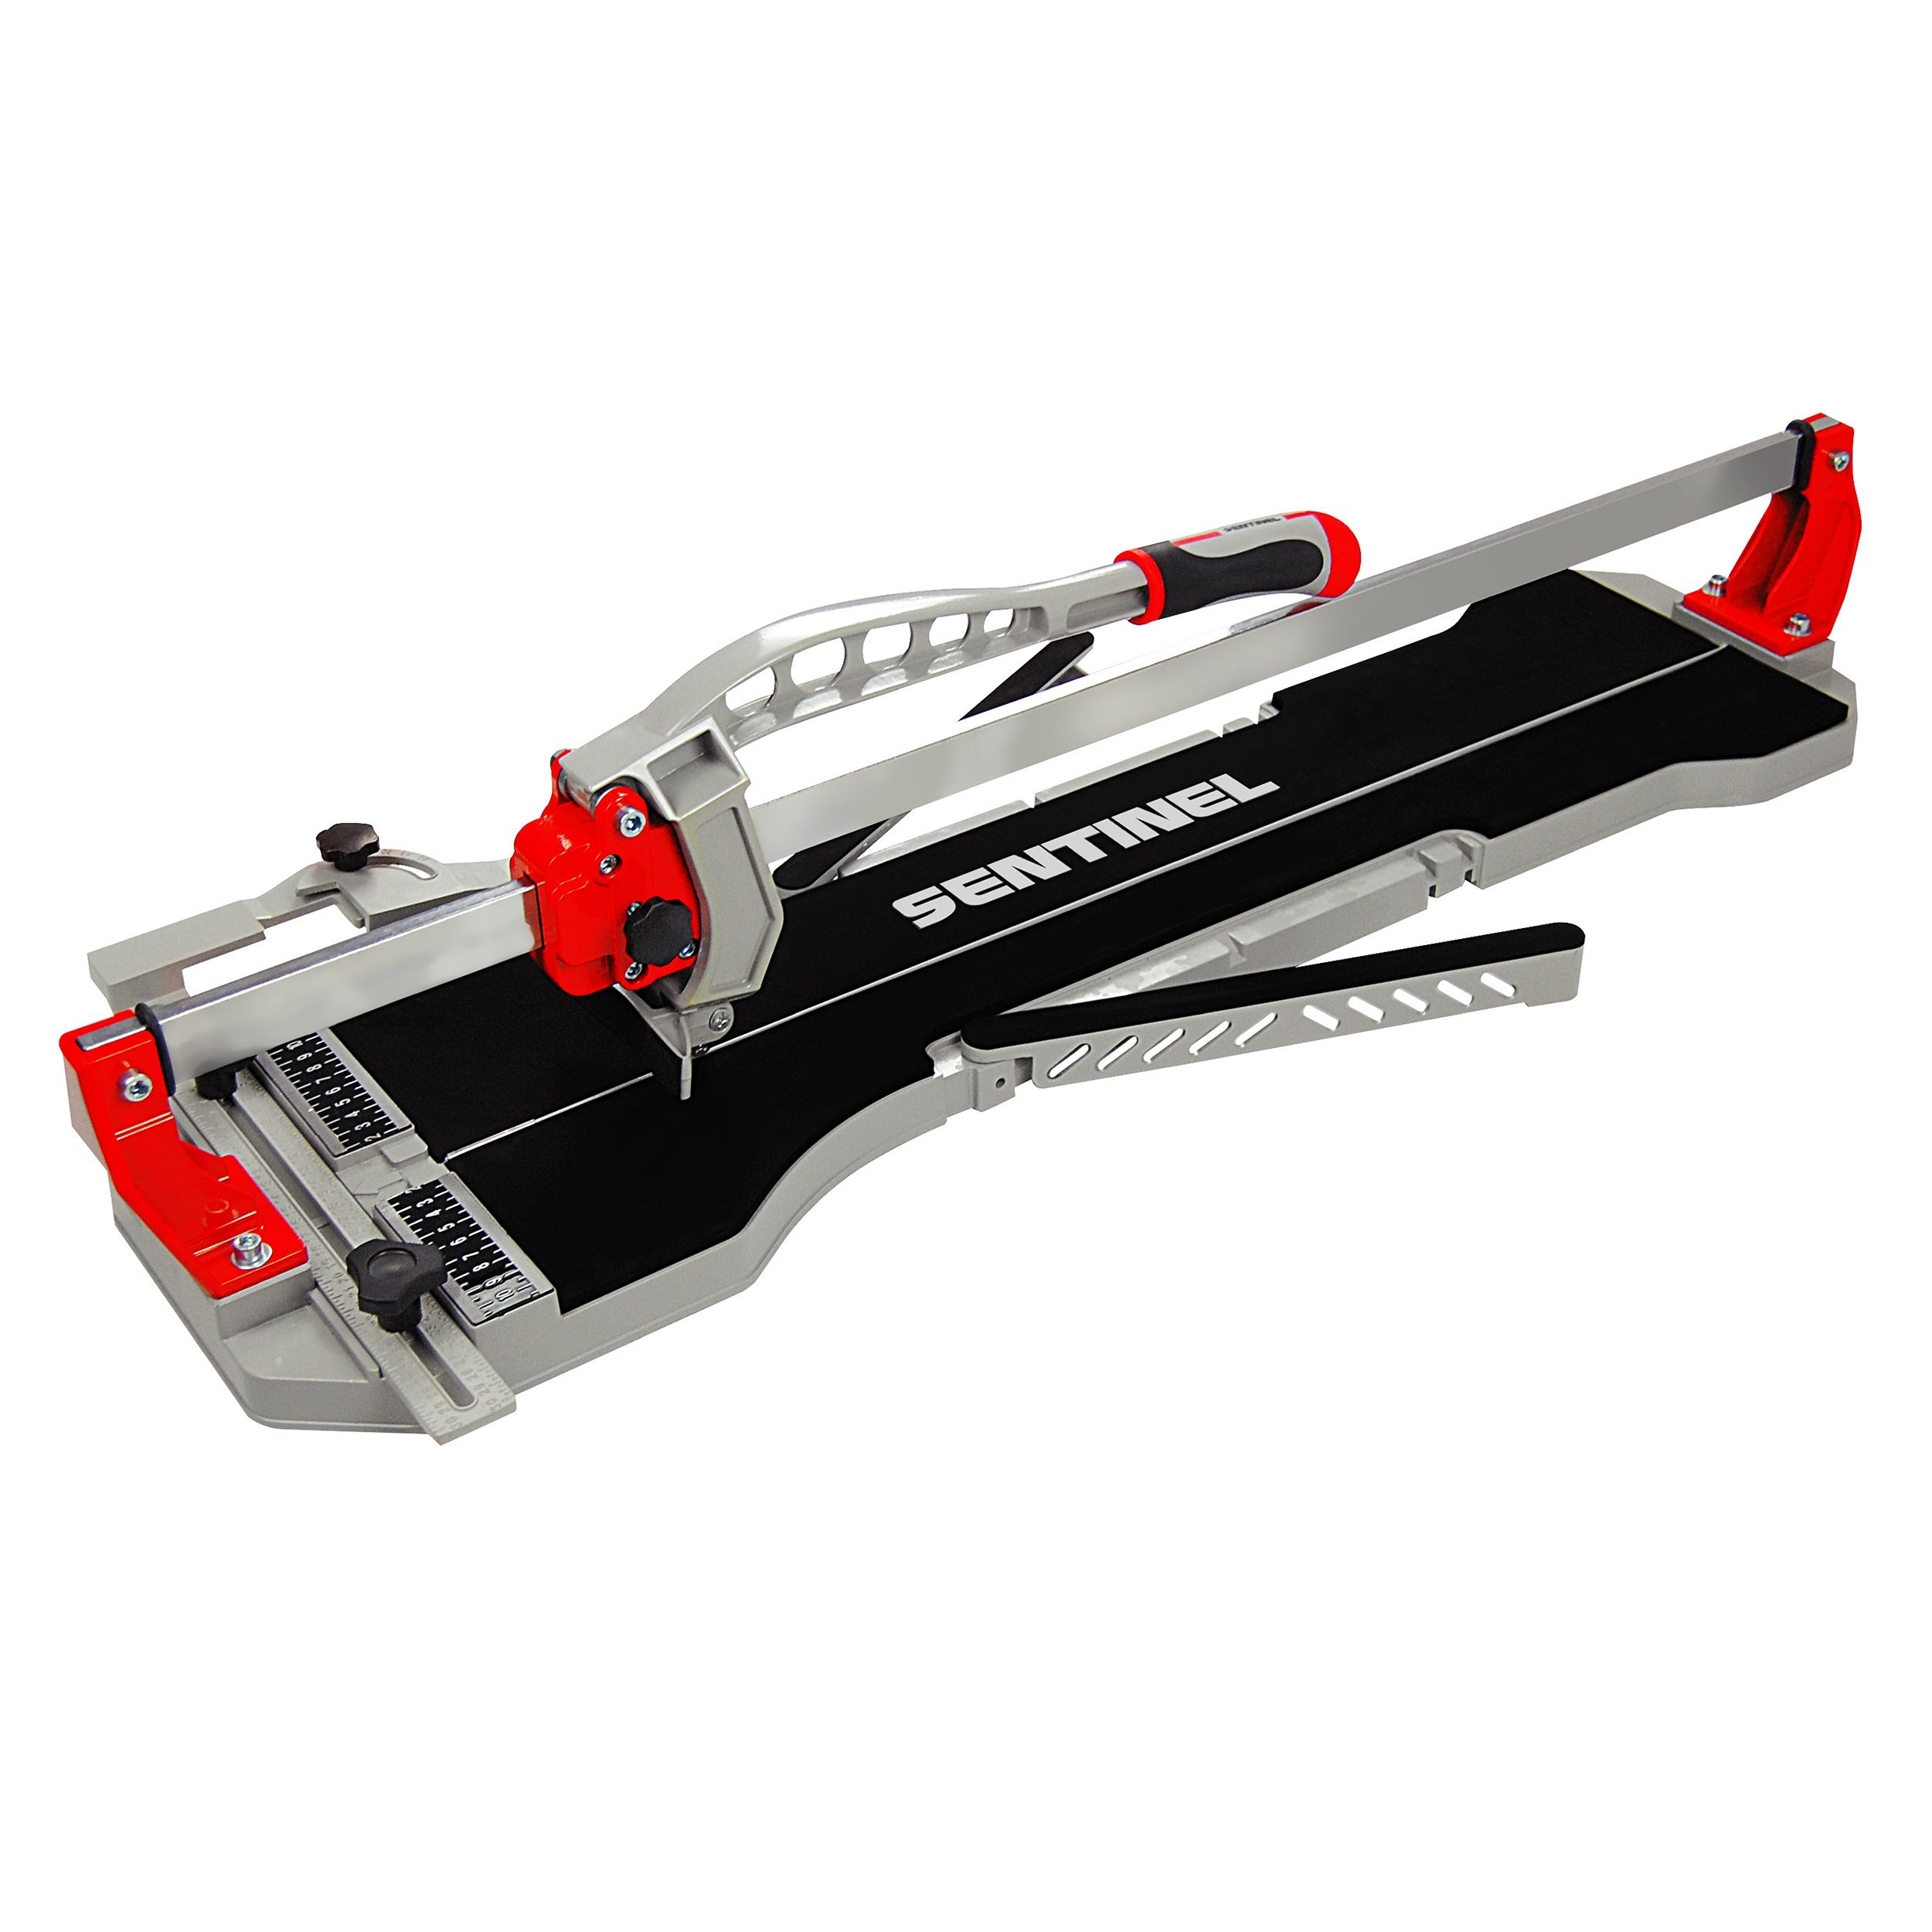 New! Sentinel 29in. Manual Tile Cutter Pro